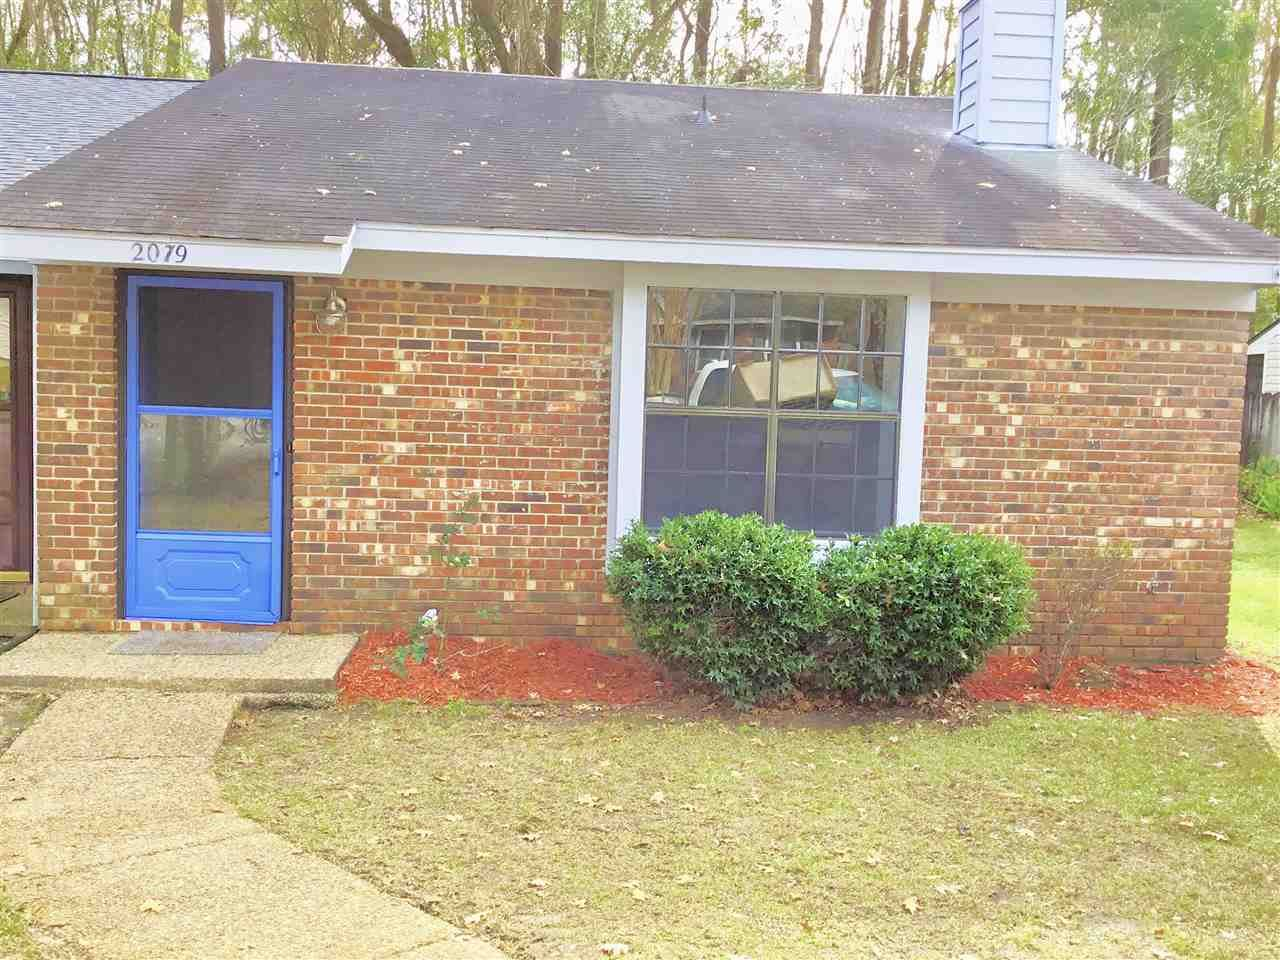 Photo for 2079 Victory Garden Lane, TALLAHASSEE, FL 32301 (MLS # 314369)